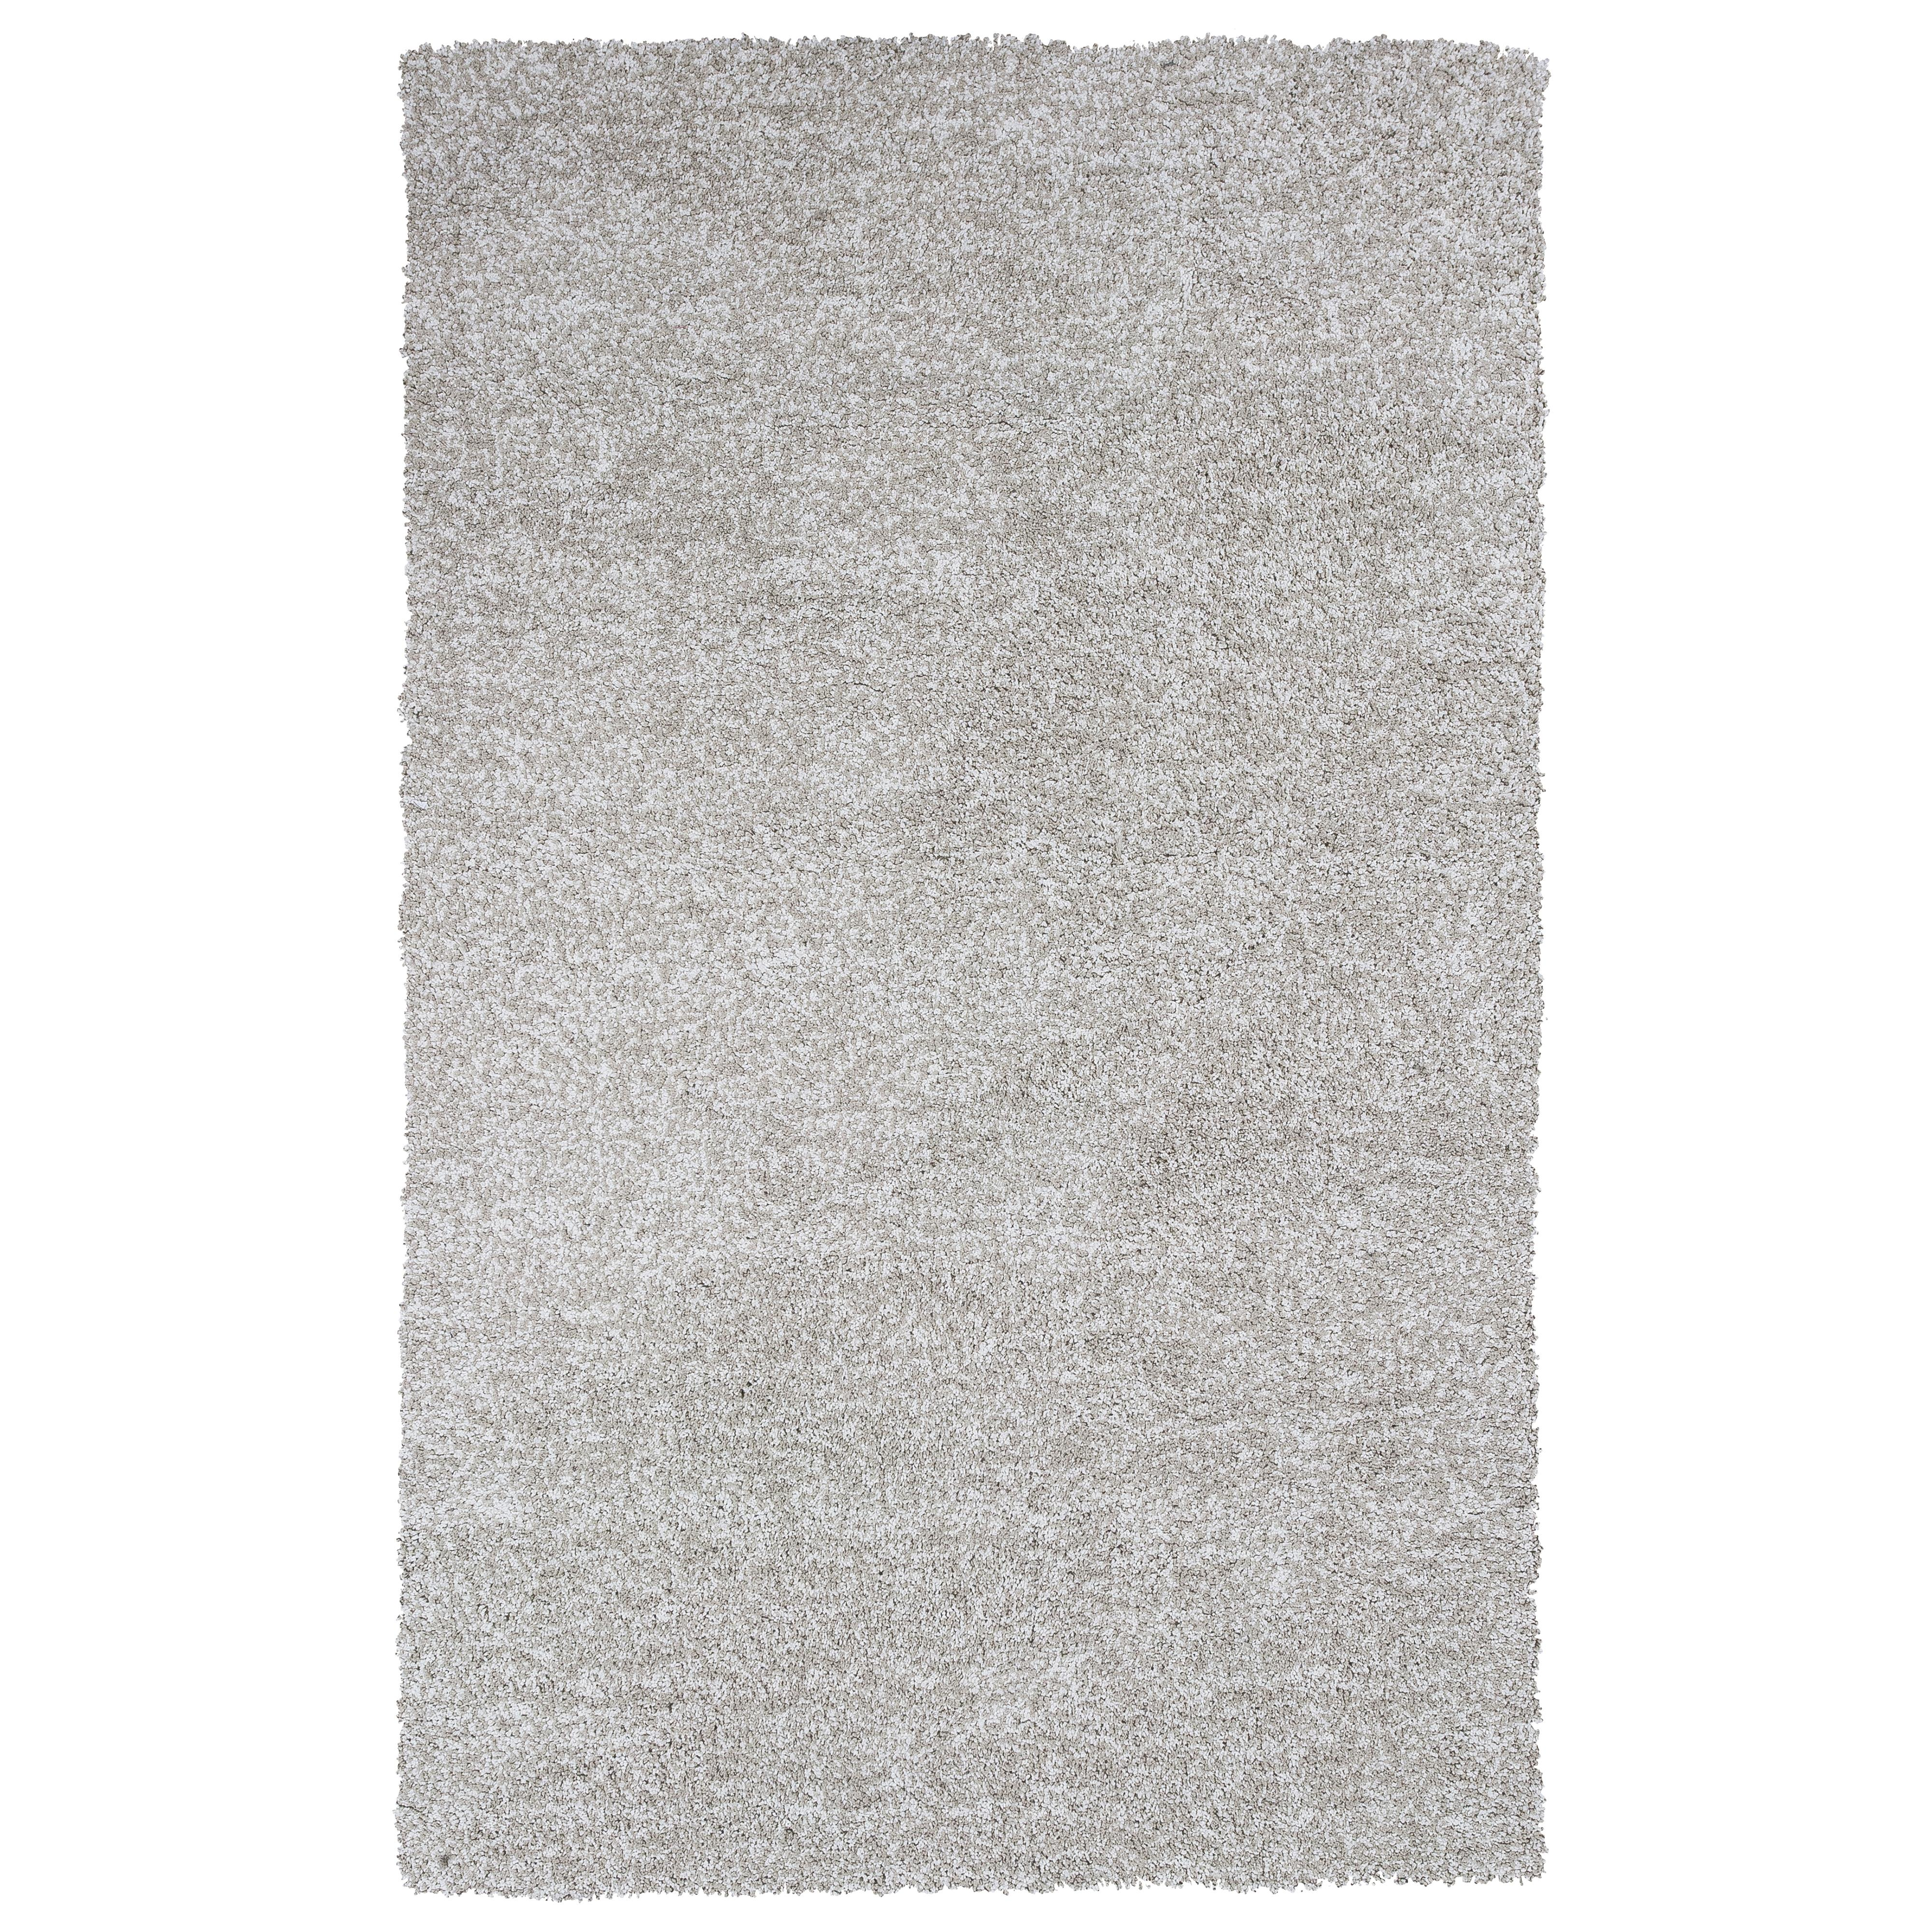 Bliss 5' X 7' Rug by Kas at Wilson's Furniture